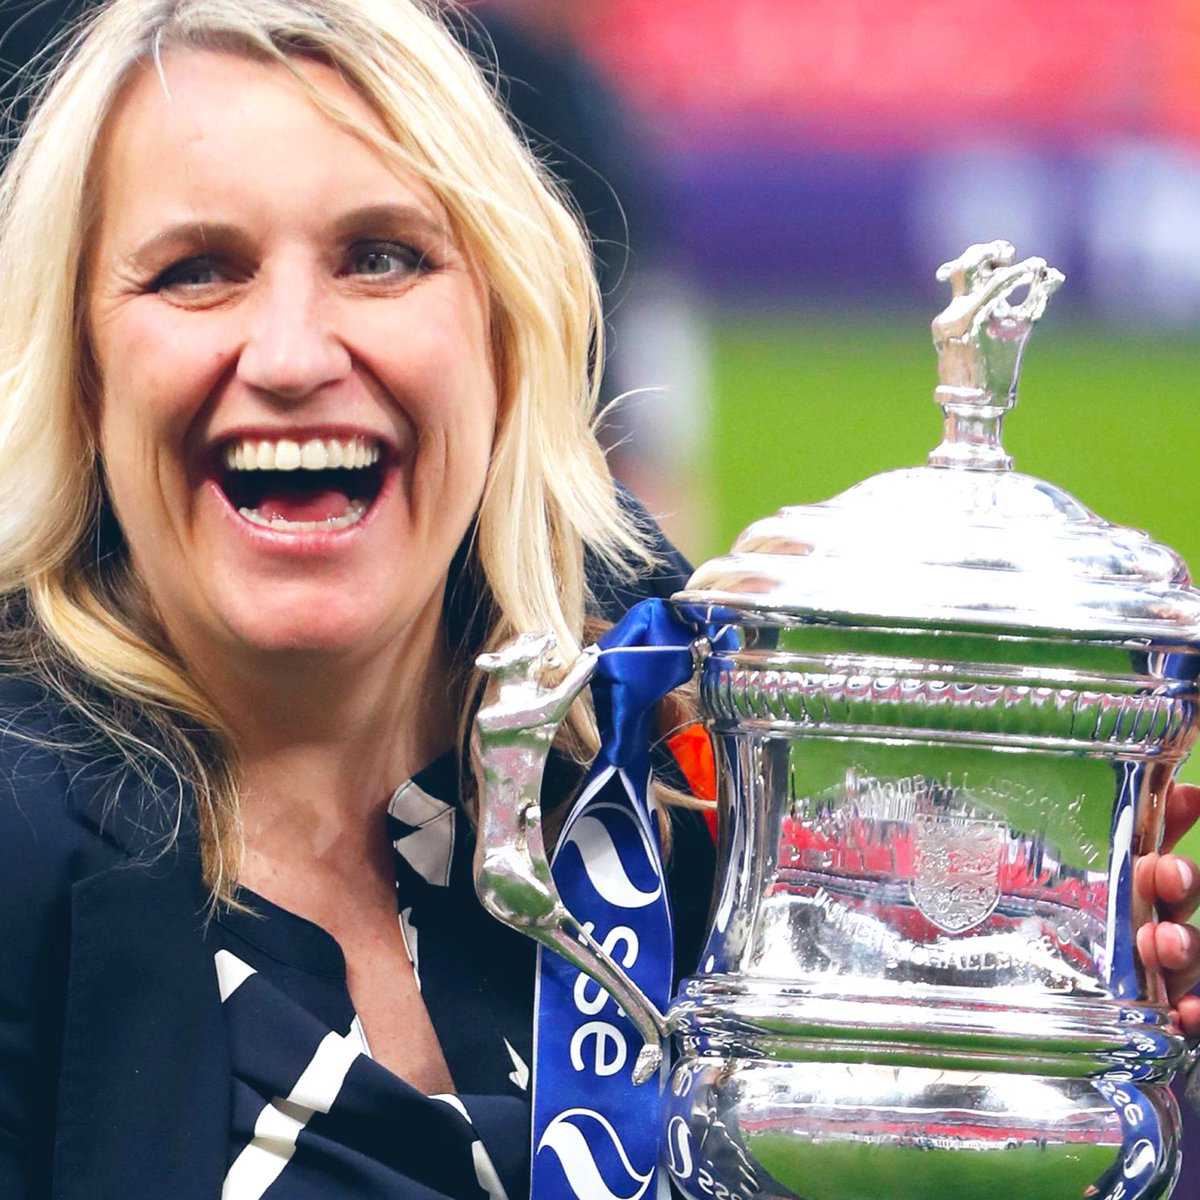 Emma Hayes has now won 4 Women's Super League titles - the most of any manager in Women's football history.  It's also her 10th major honour as Chelsea Women's manager. Legend. https://t.co/qKphfUZhyP